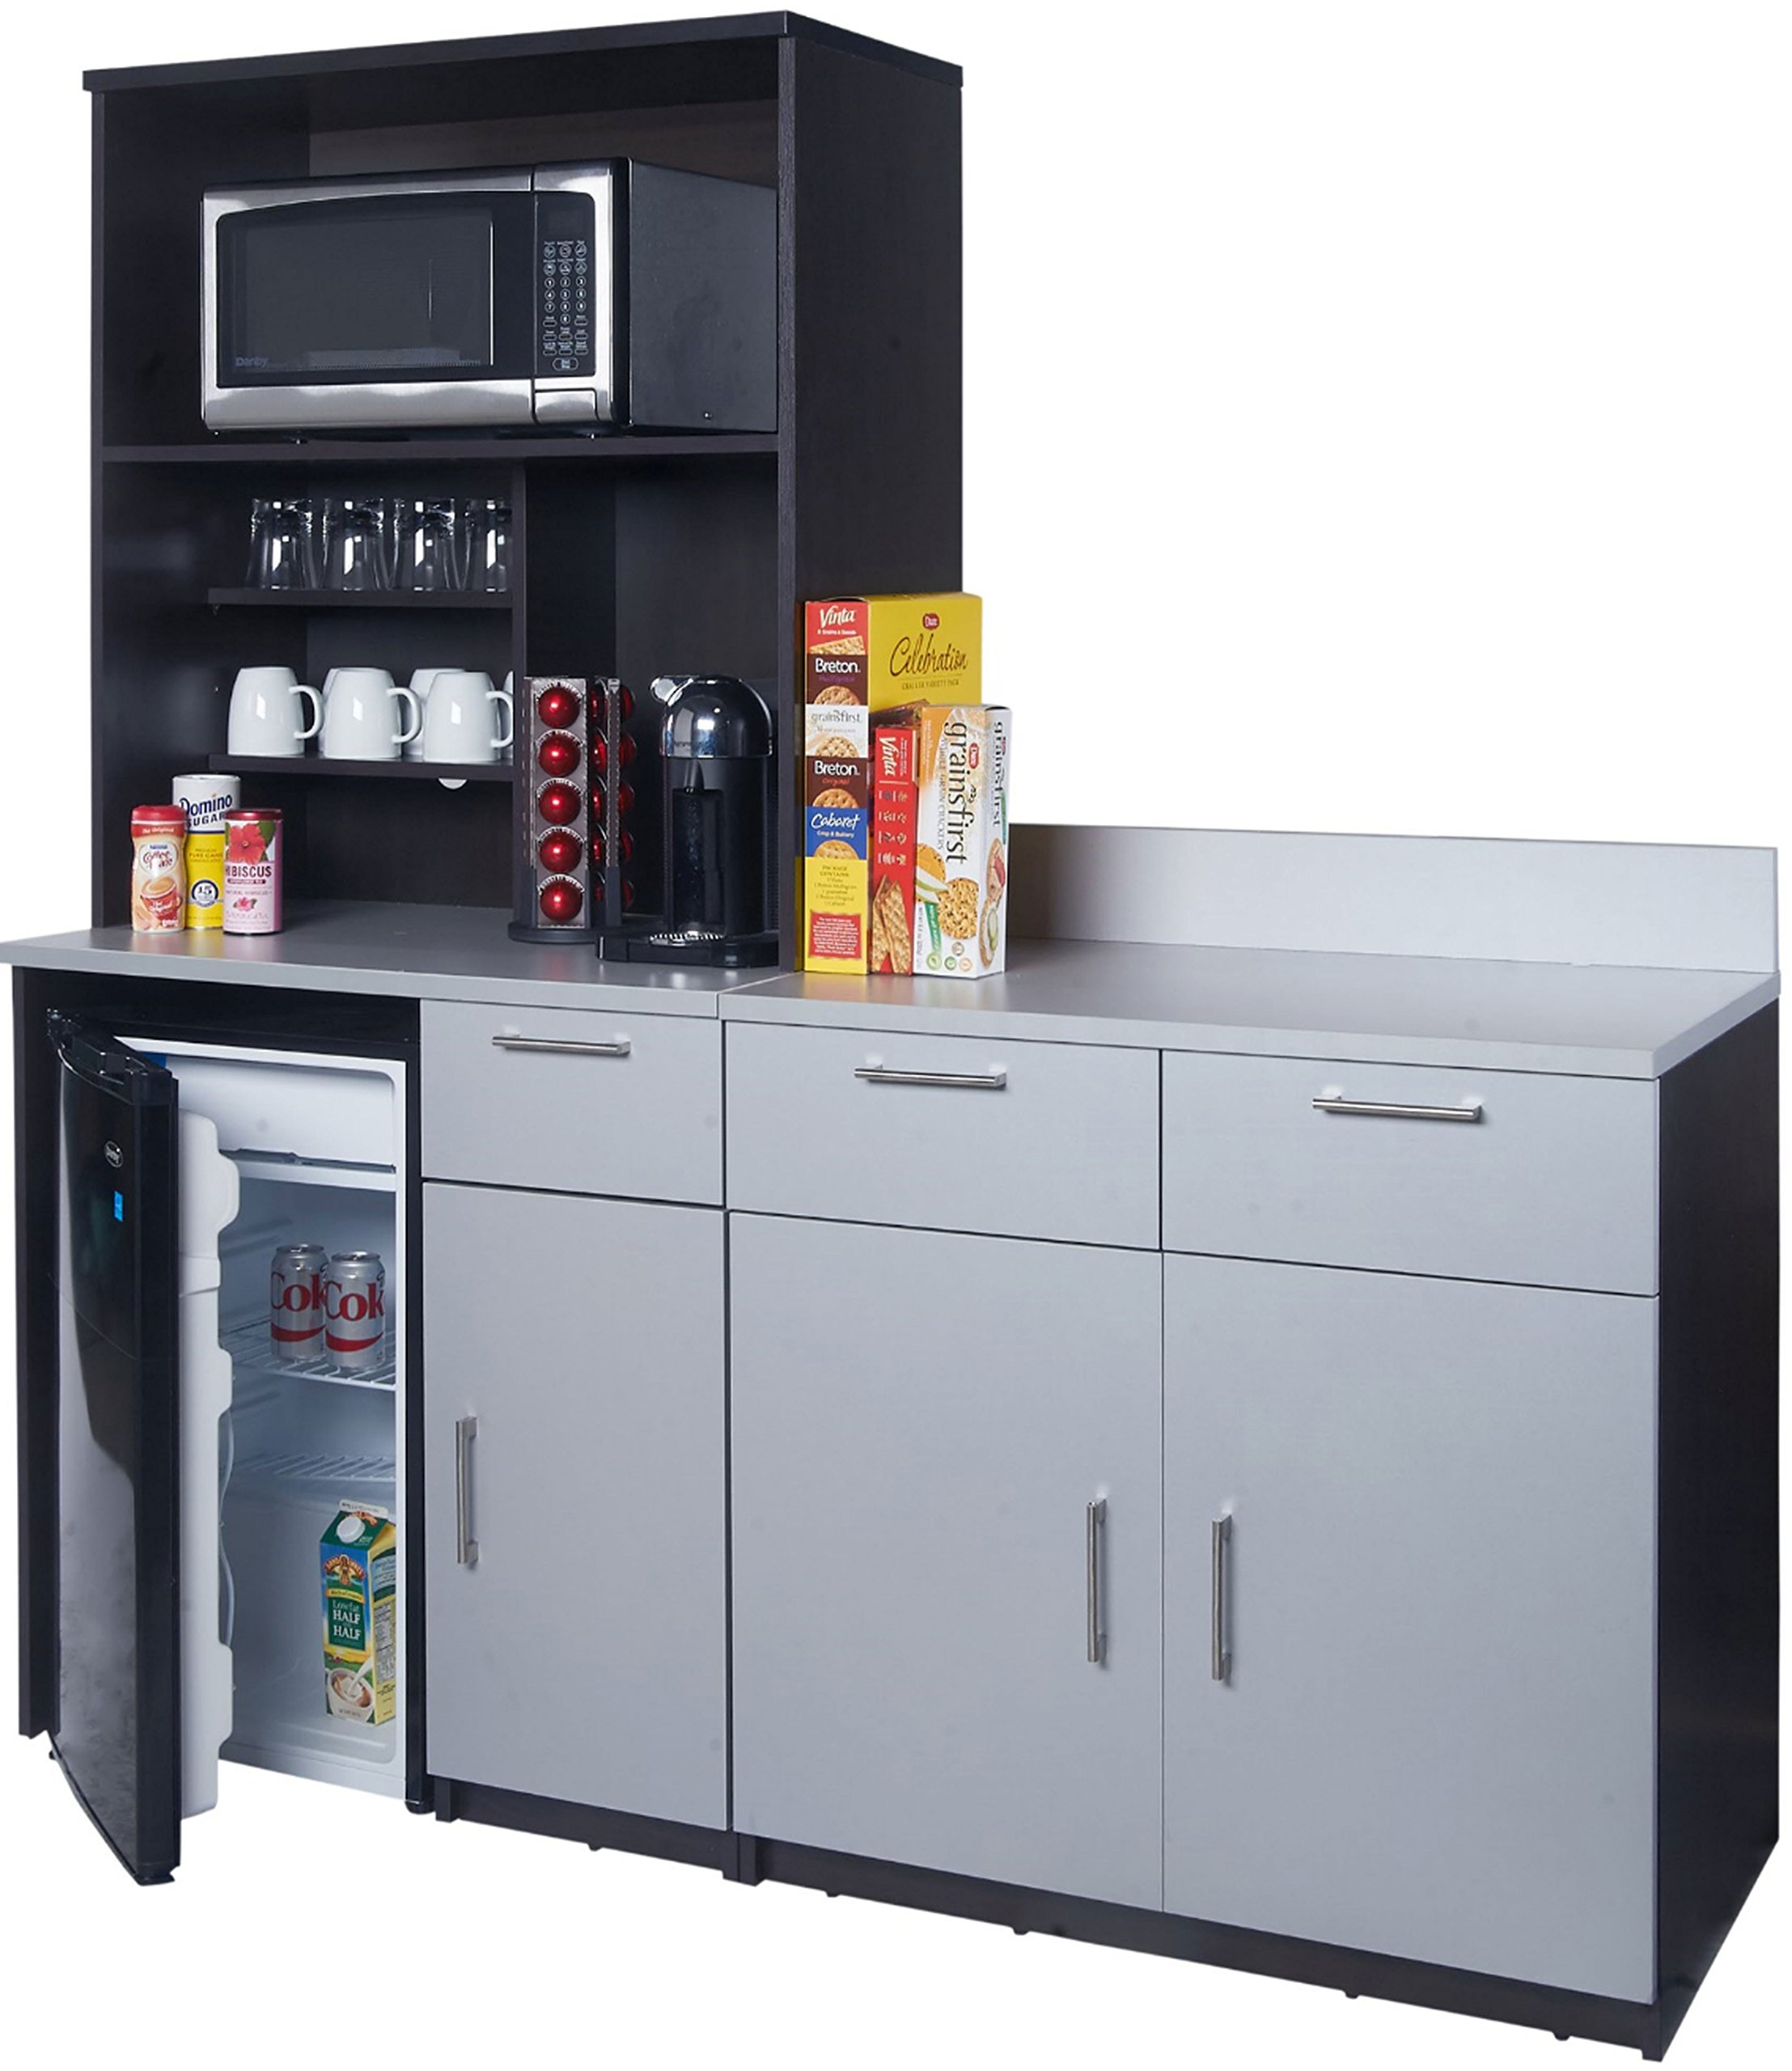 Coffee Kitchen Lunch Break Room Cabinets Model 4257 BREAKTIME 3 Piece Group Color Espresso/Silver Metalic - Factory Assembled (NOT RTA) Furniture Items ONLY. by Breaktime (Image #1)